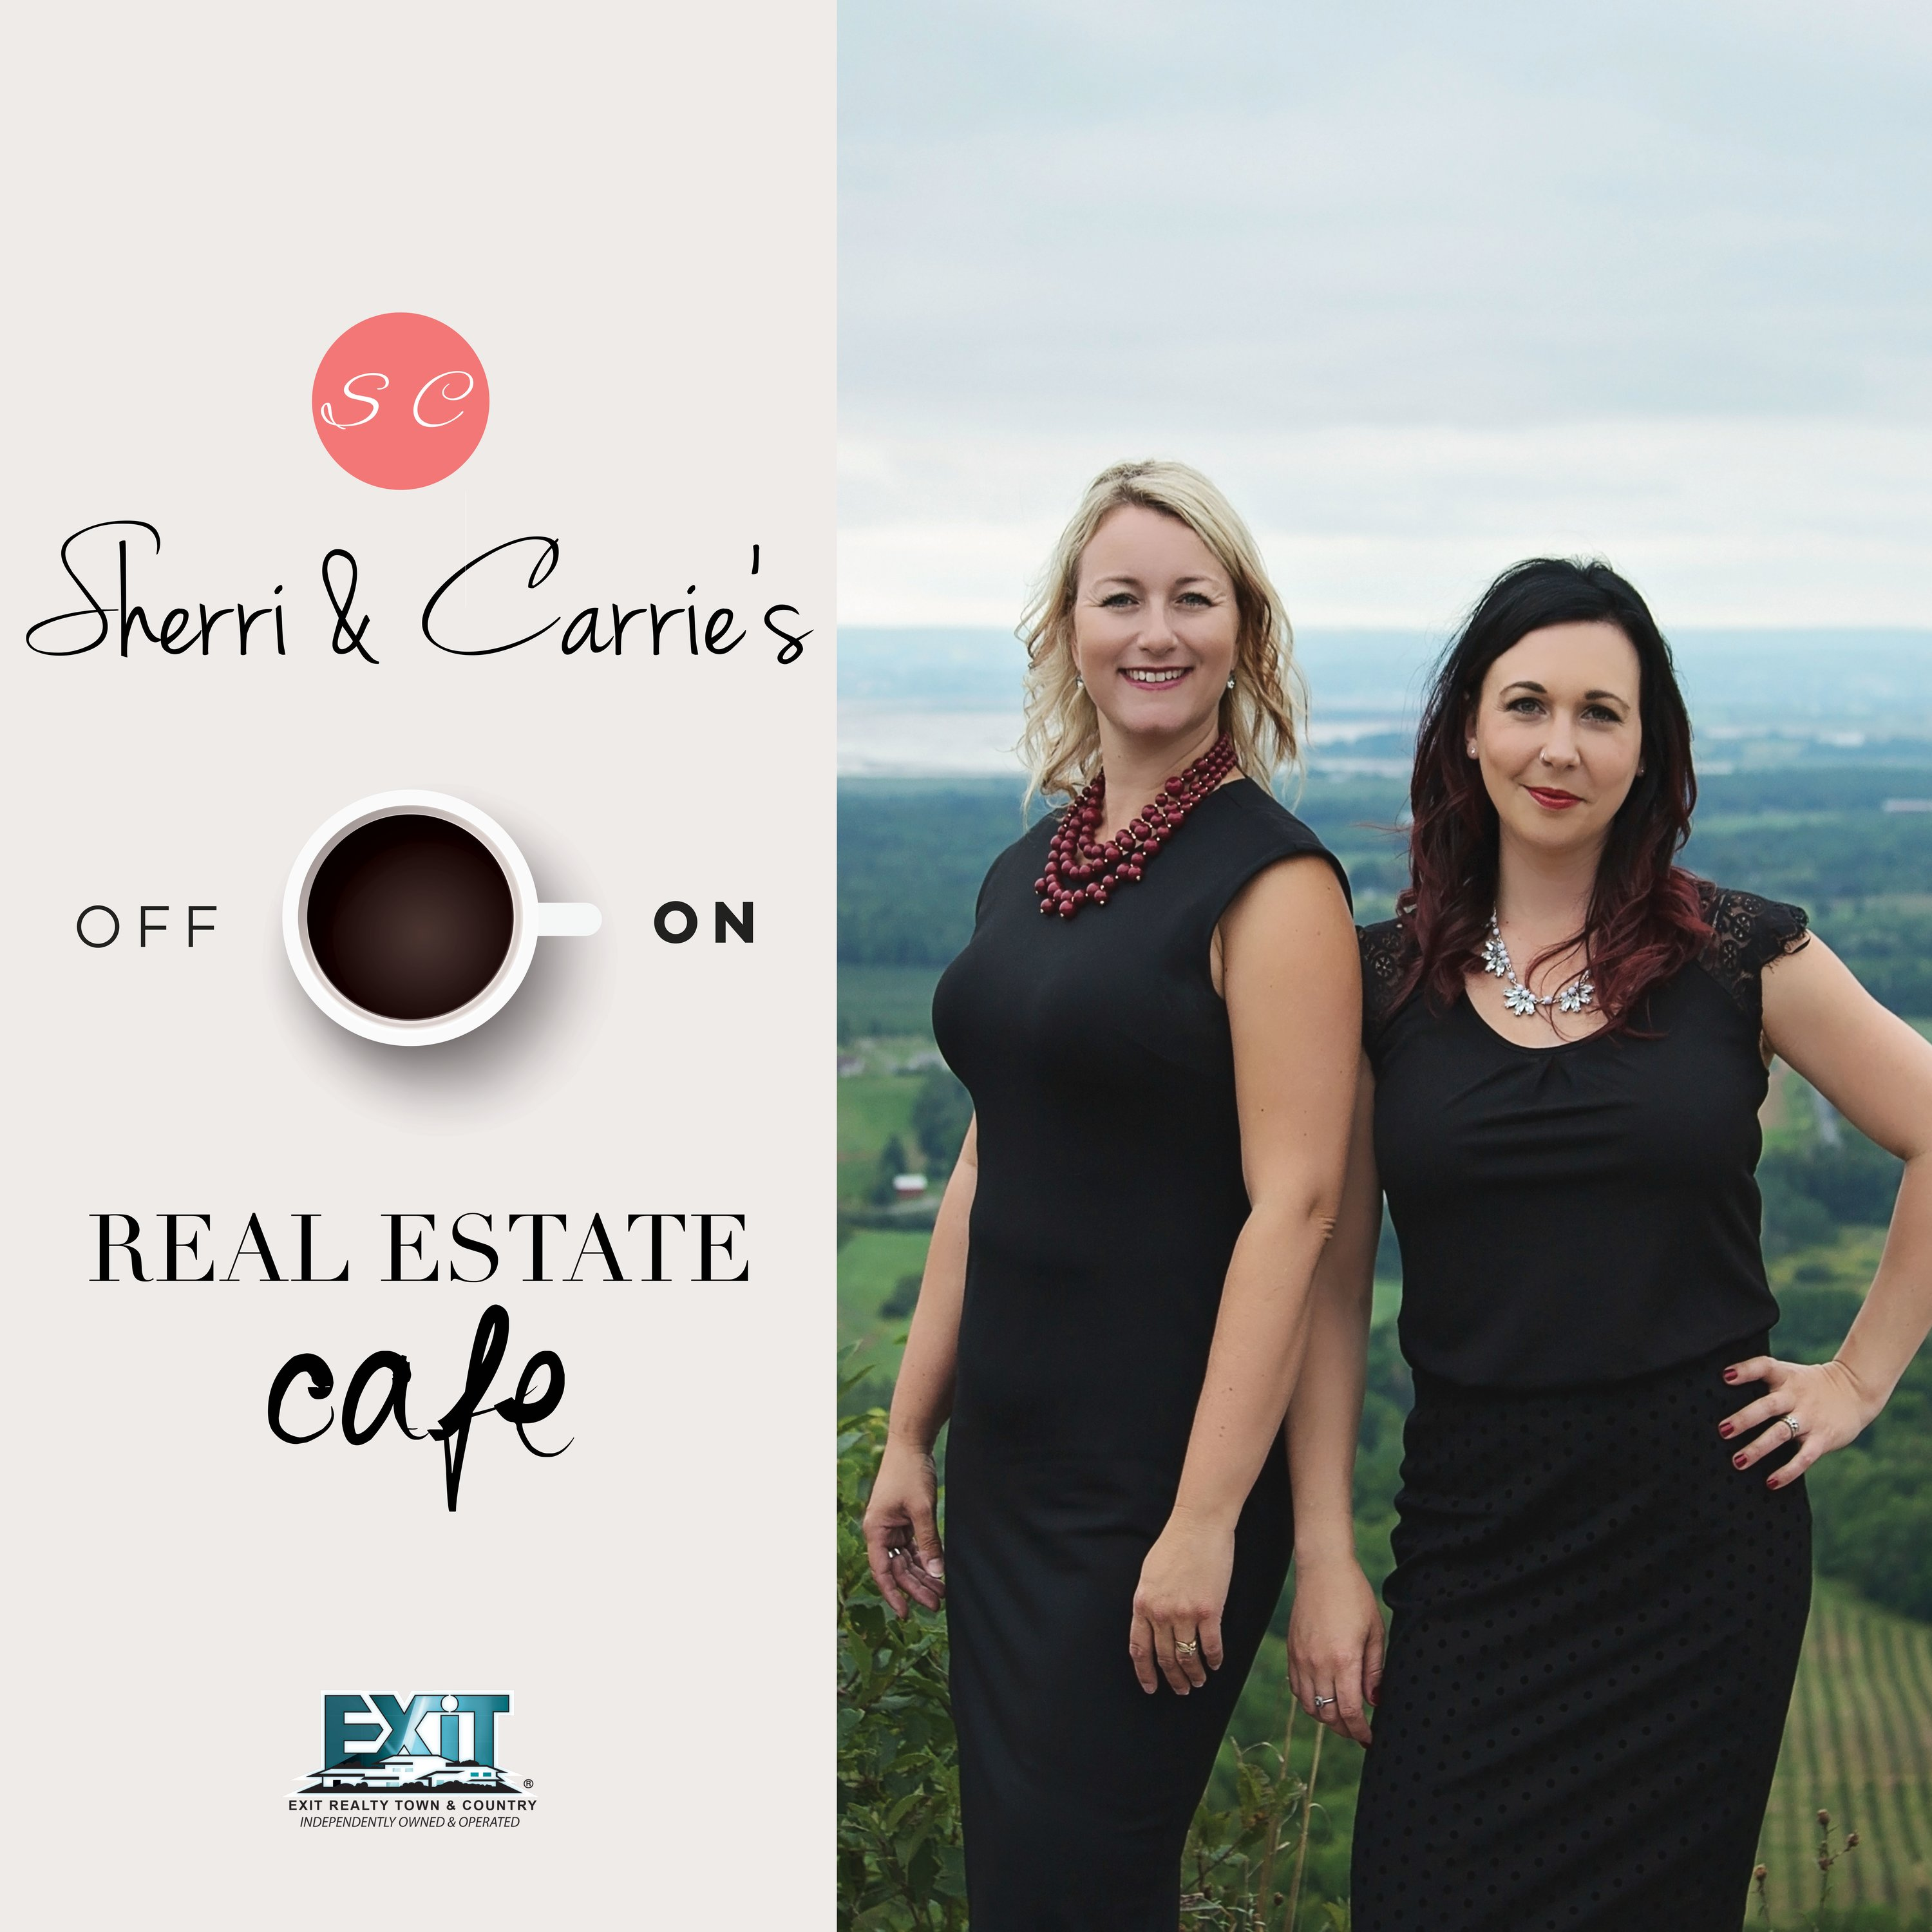 Sherri & Carrie's Real Estate Cafe